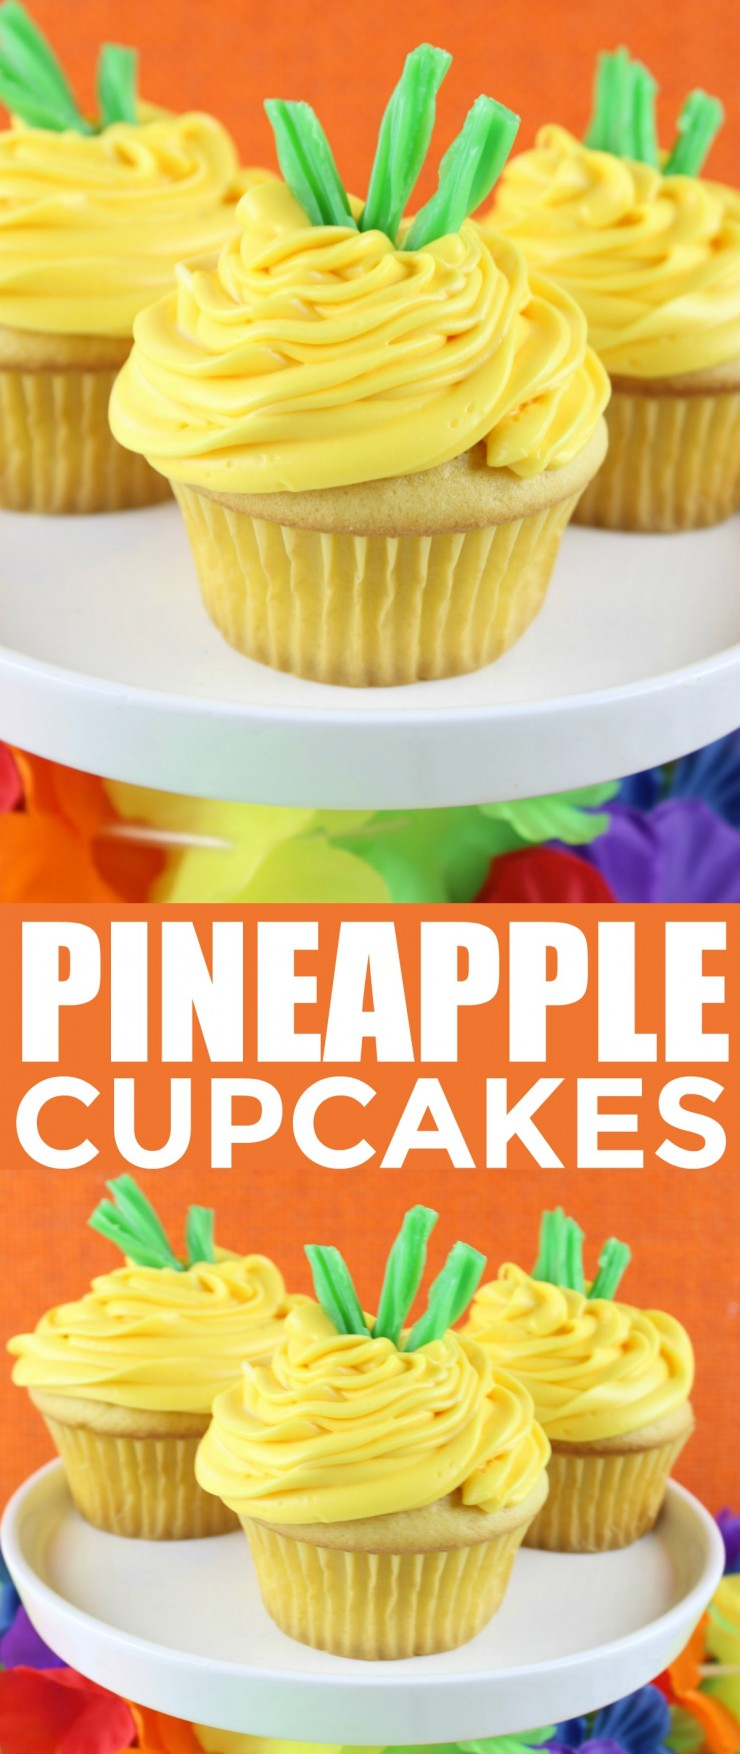 These Pineapple Cupcakes are super adorable, don't you think? Perfect for any summer or Hawaiian themed party, everyone are sure to love these cute desserts.